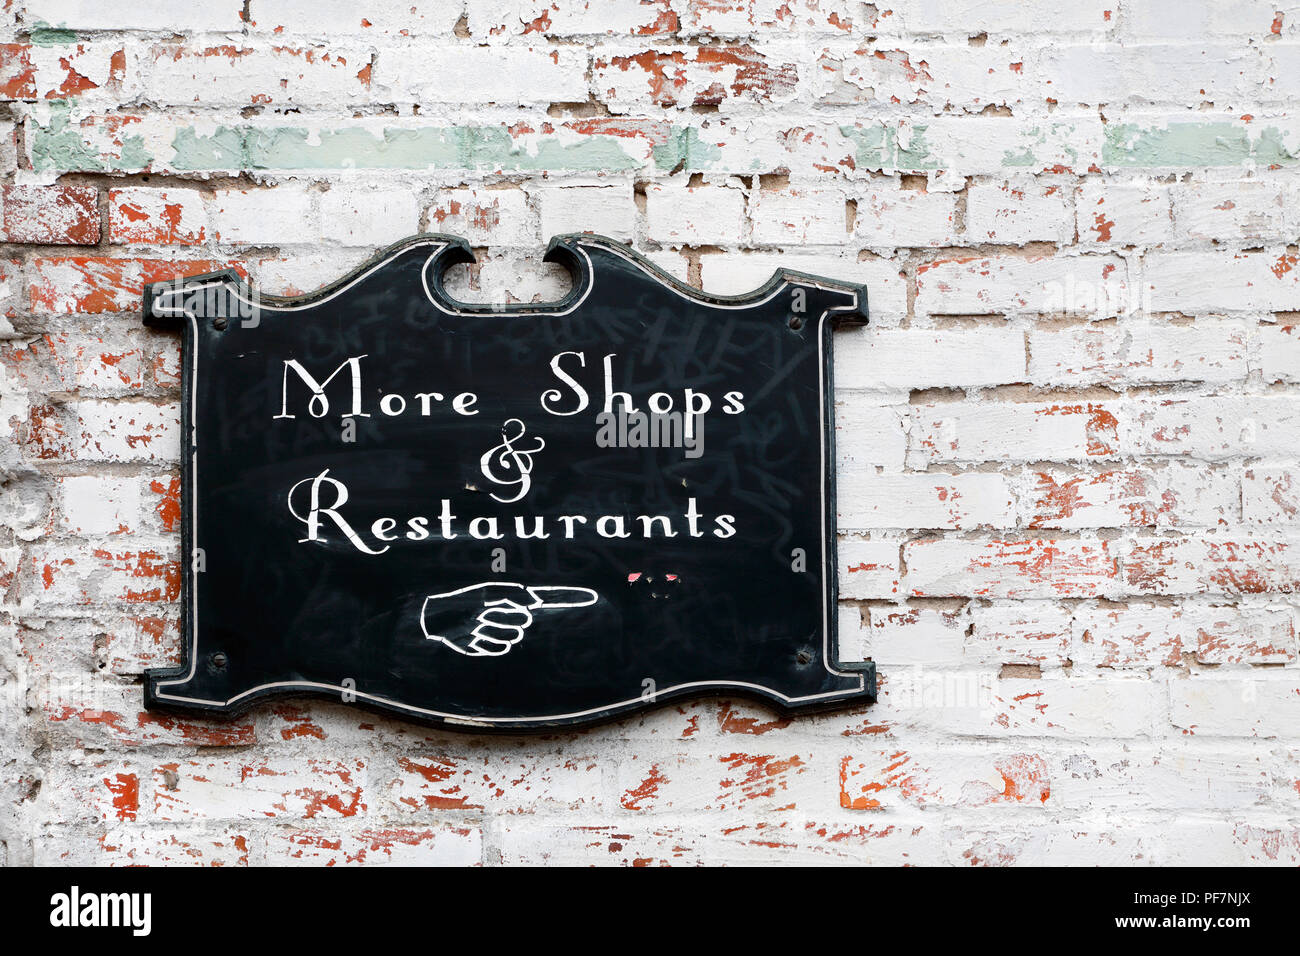 More shops and restaurants sign on old white brick wall Stock Photo